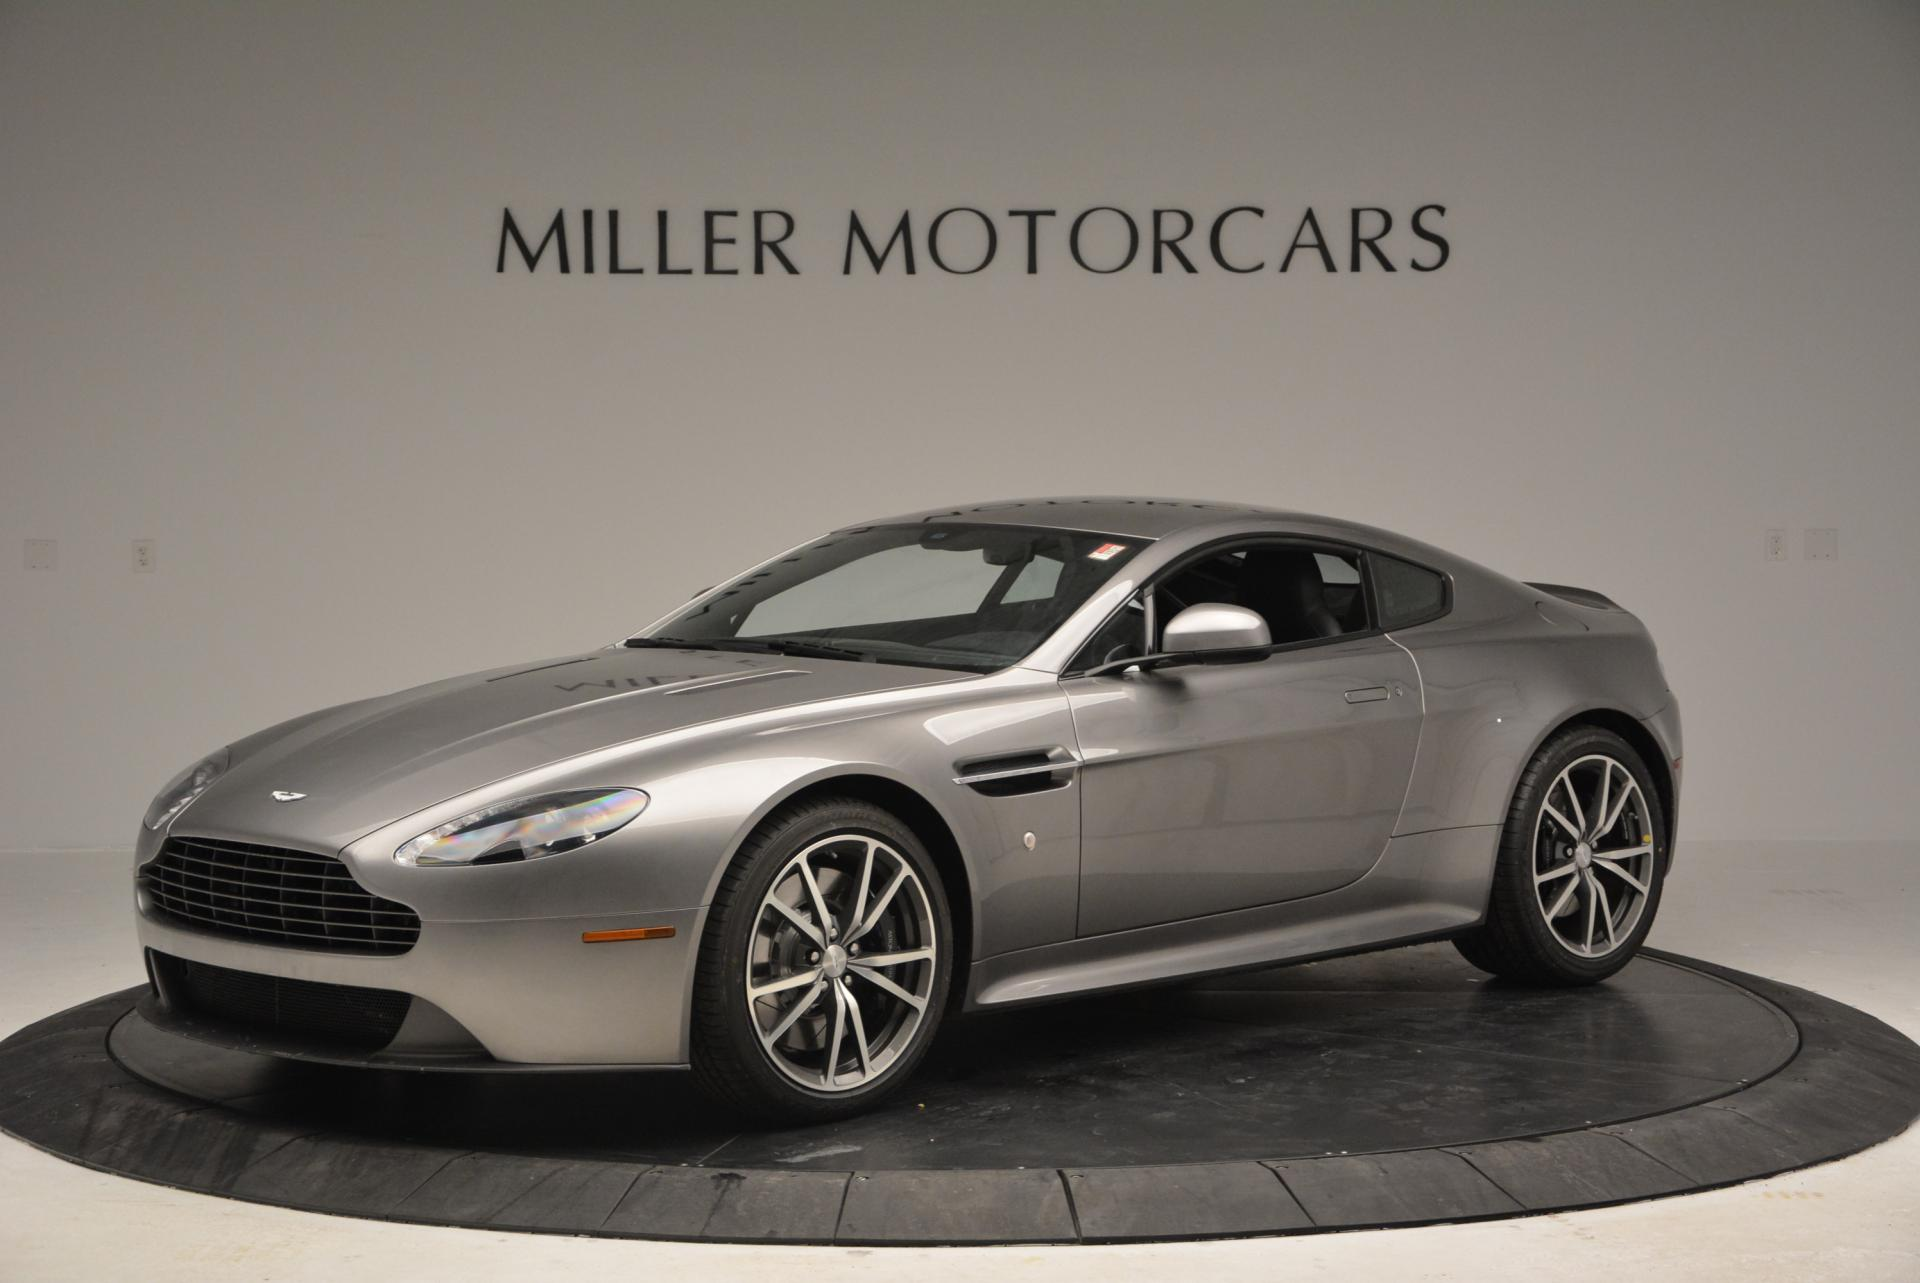 Pre Owned 2016 Aston Martin V8 Vantage Gt Coupe For Sale 78 900 Miller Motorcars Stock A1331a